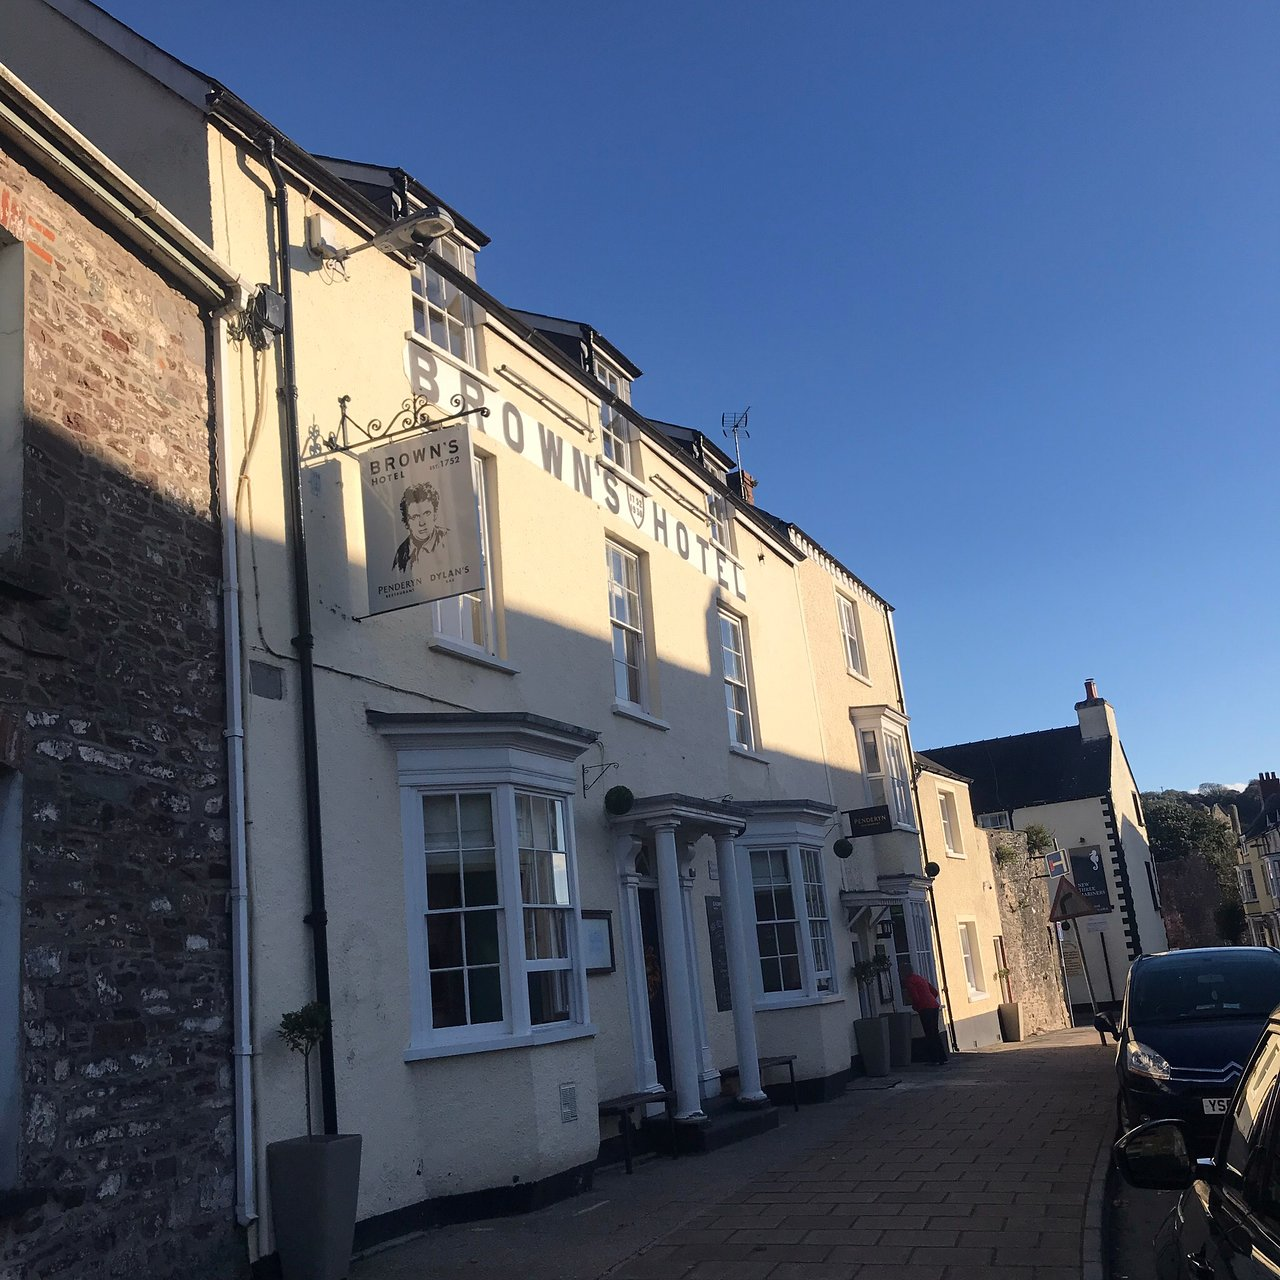 The browns hotel laugharne